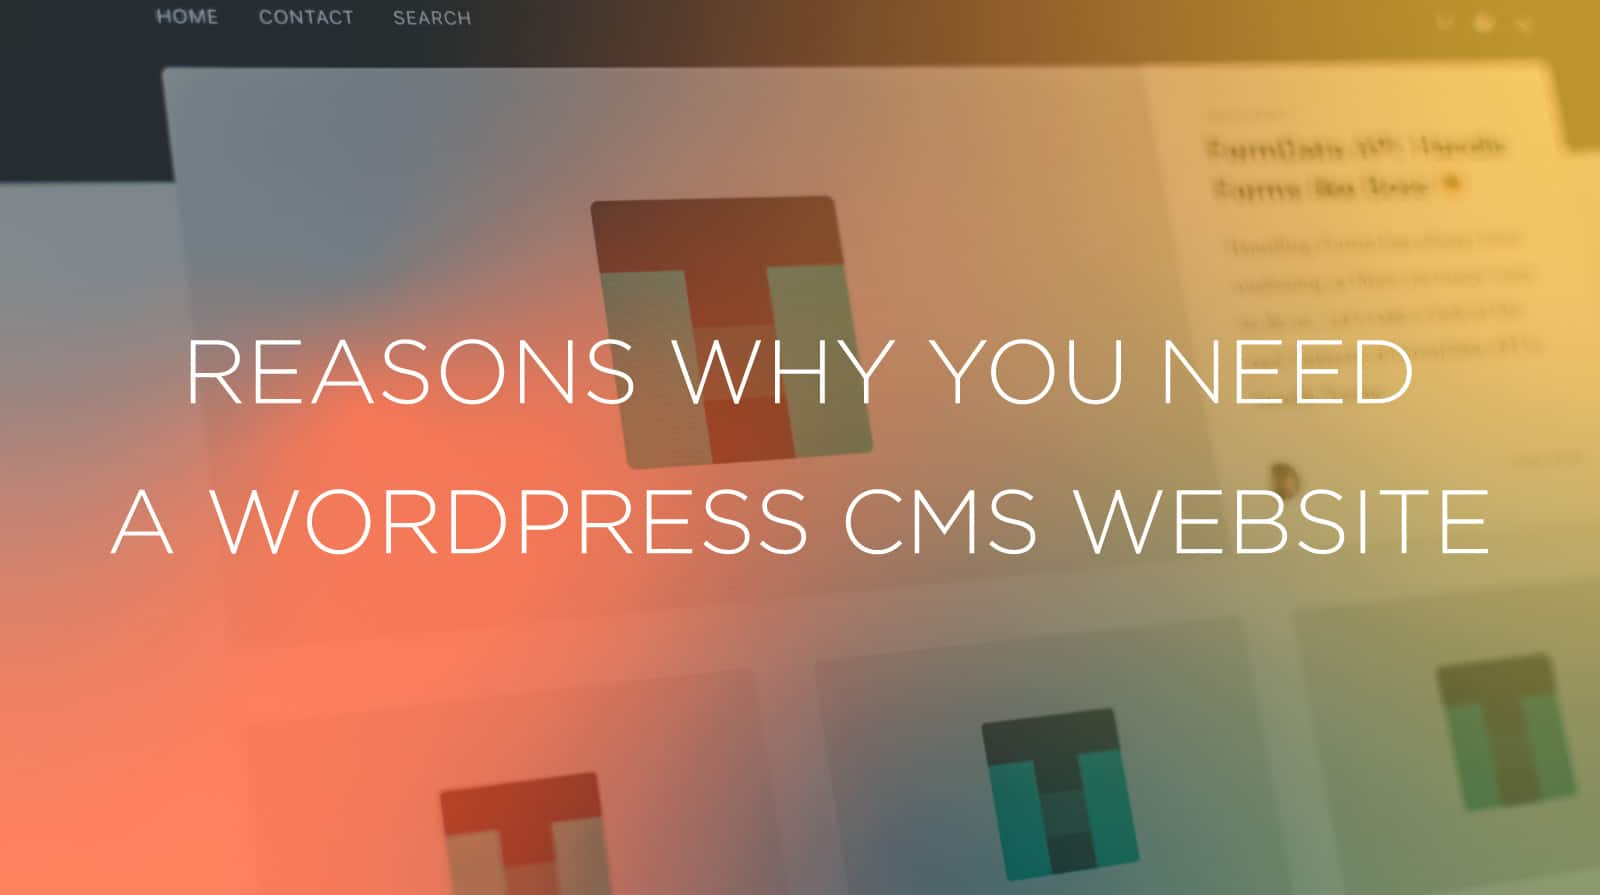 Reasons Why You Need a WordPress CMS Website